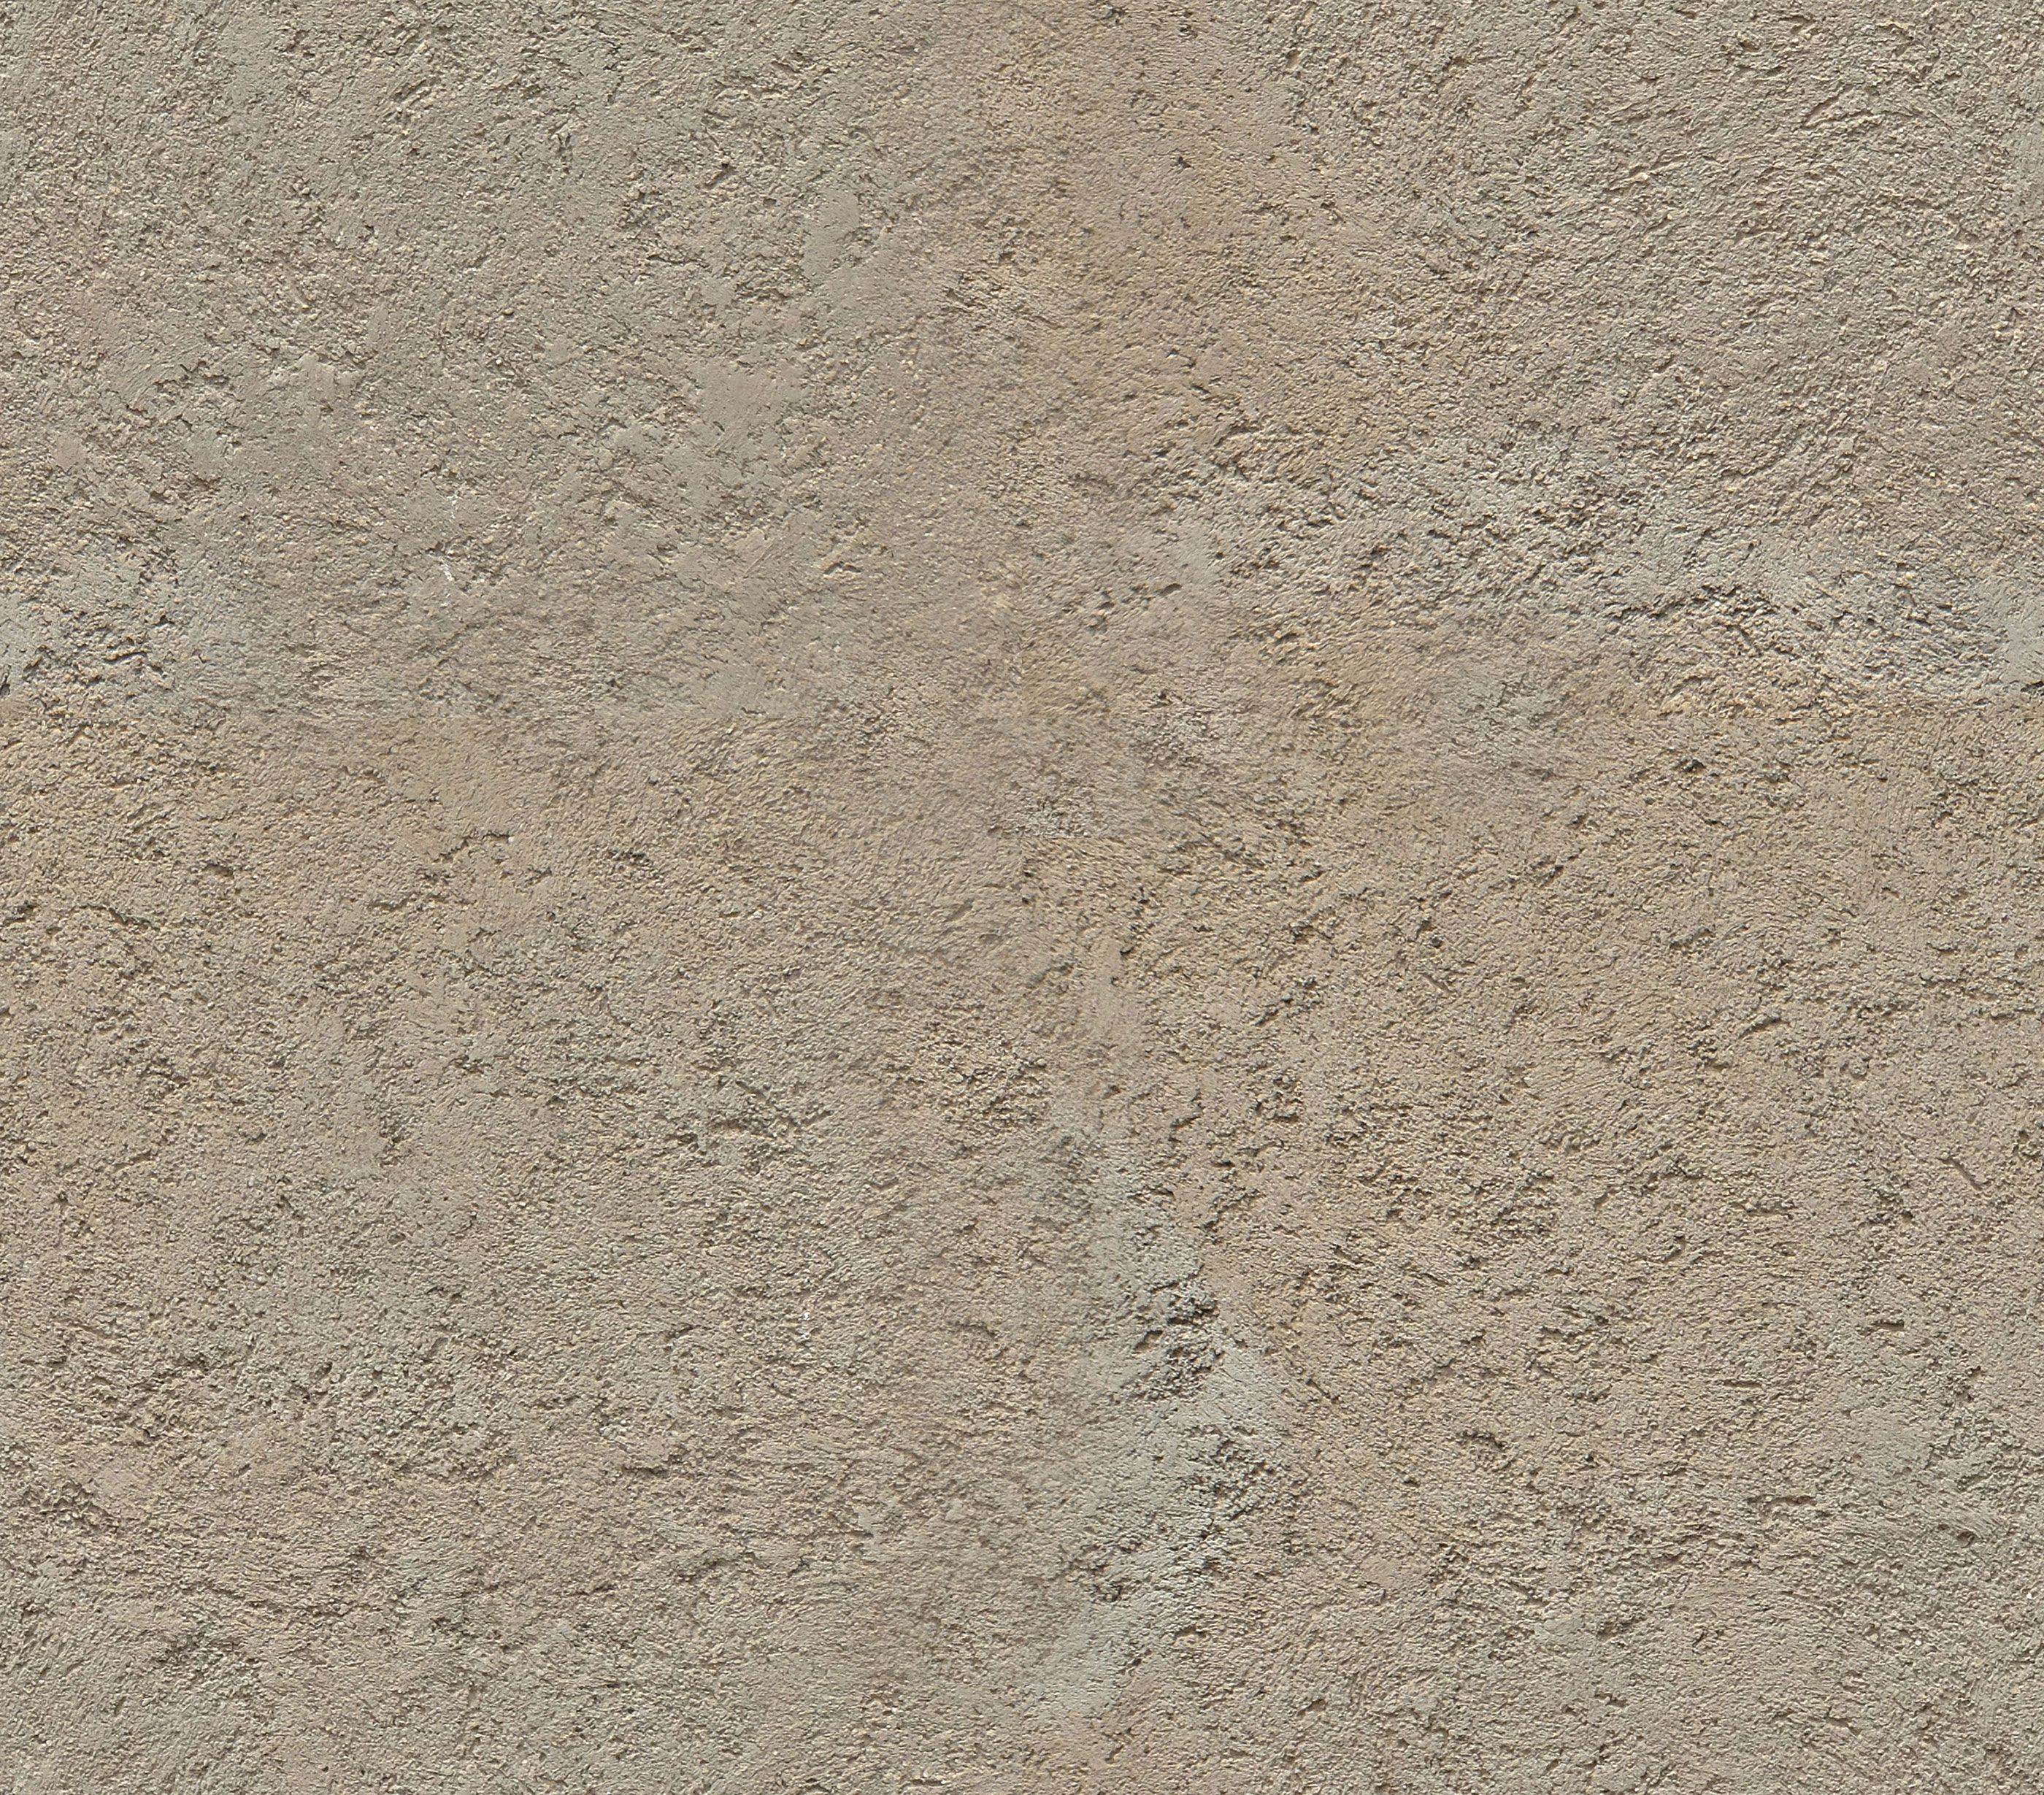 Pin By Jaime Aguilar On Stucco Texture: Textured Stucco Wall (Scarpa)